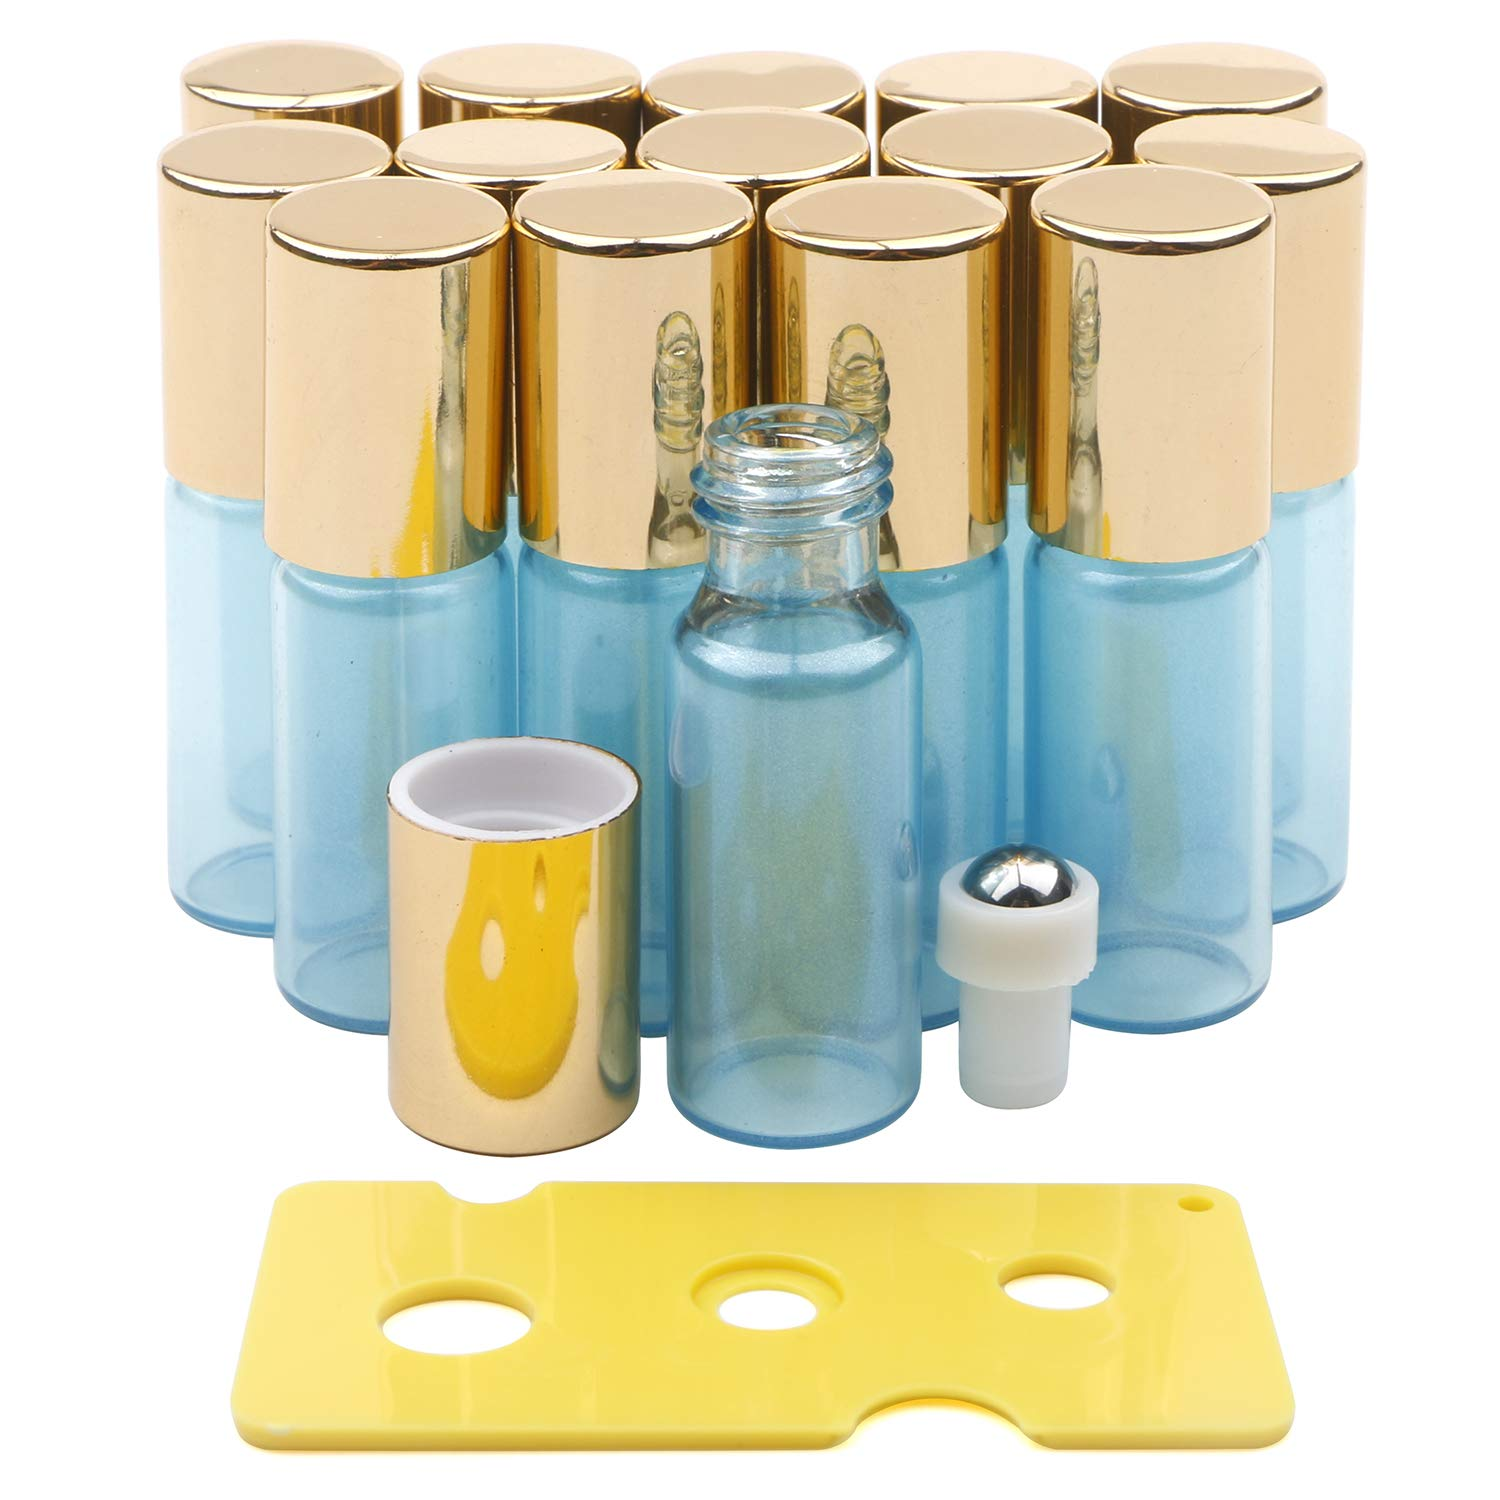 Kesell 15 Pack 5ml Pearl Light Blue Glass Roller Bottles with Stainless Steel Roller Balls and Golden Lids,Opener Included by Kesell